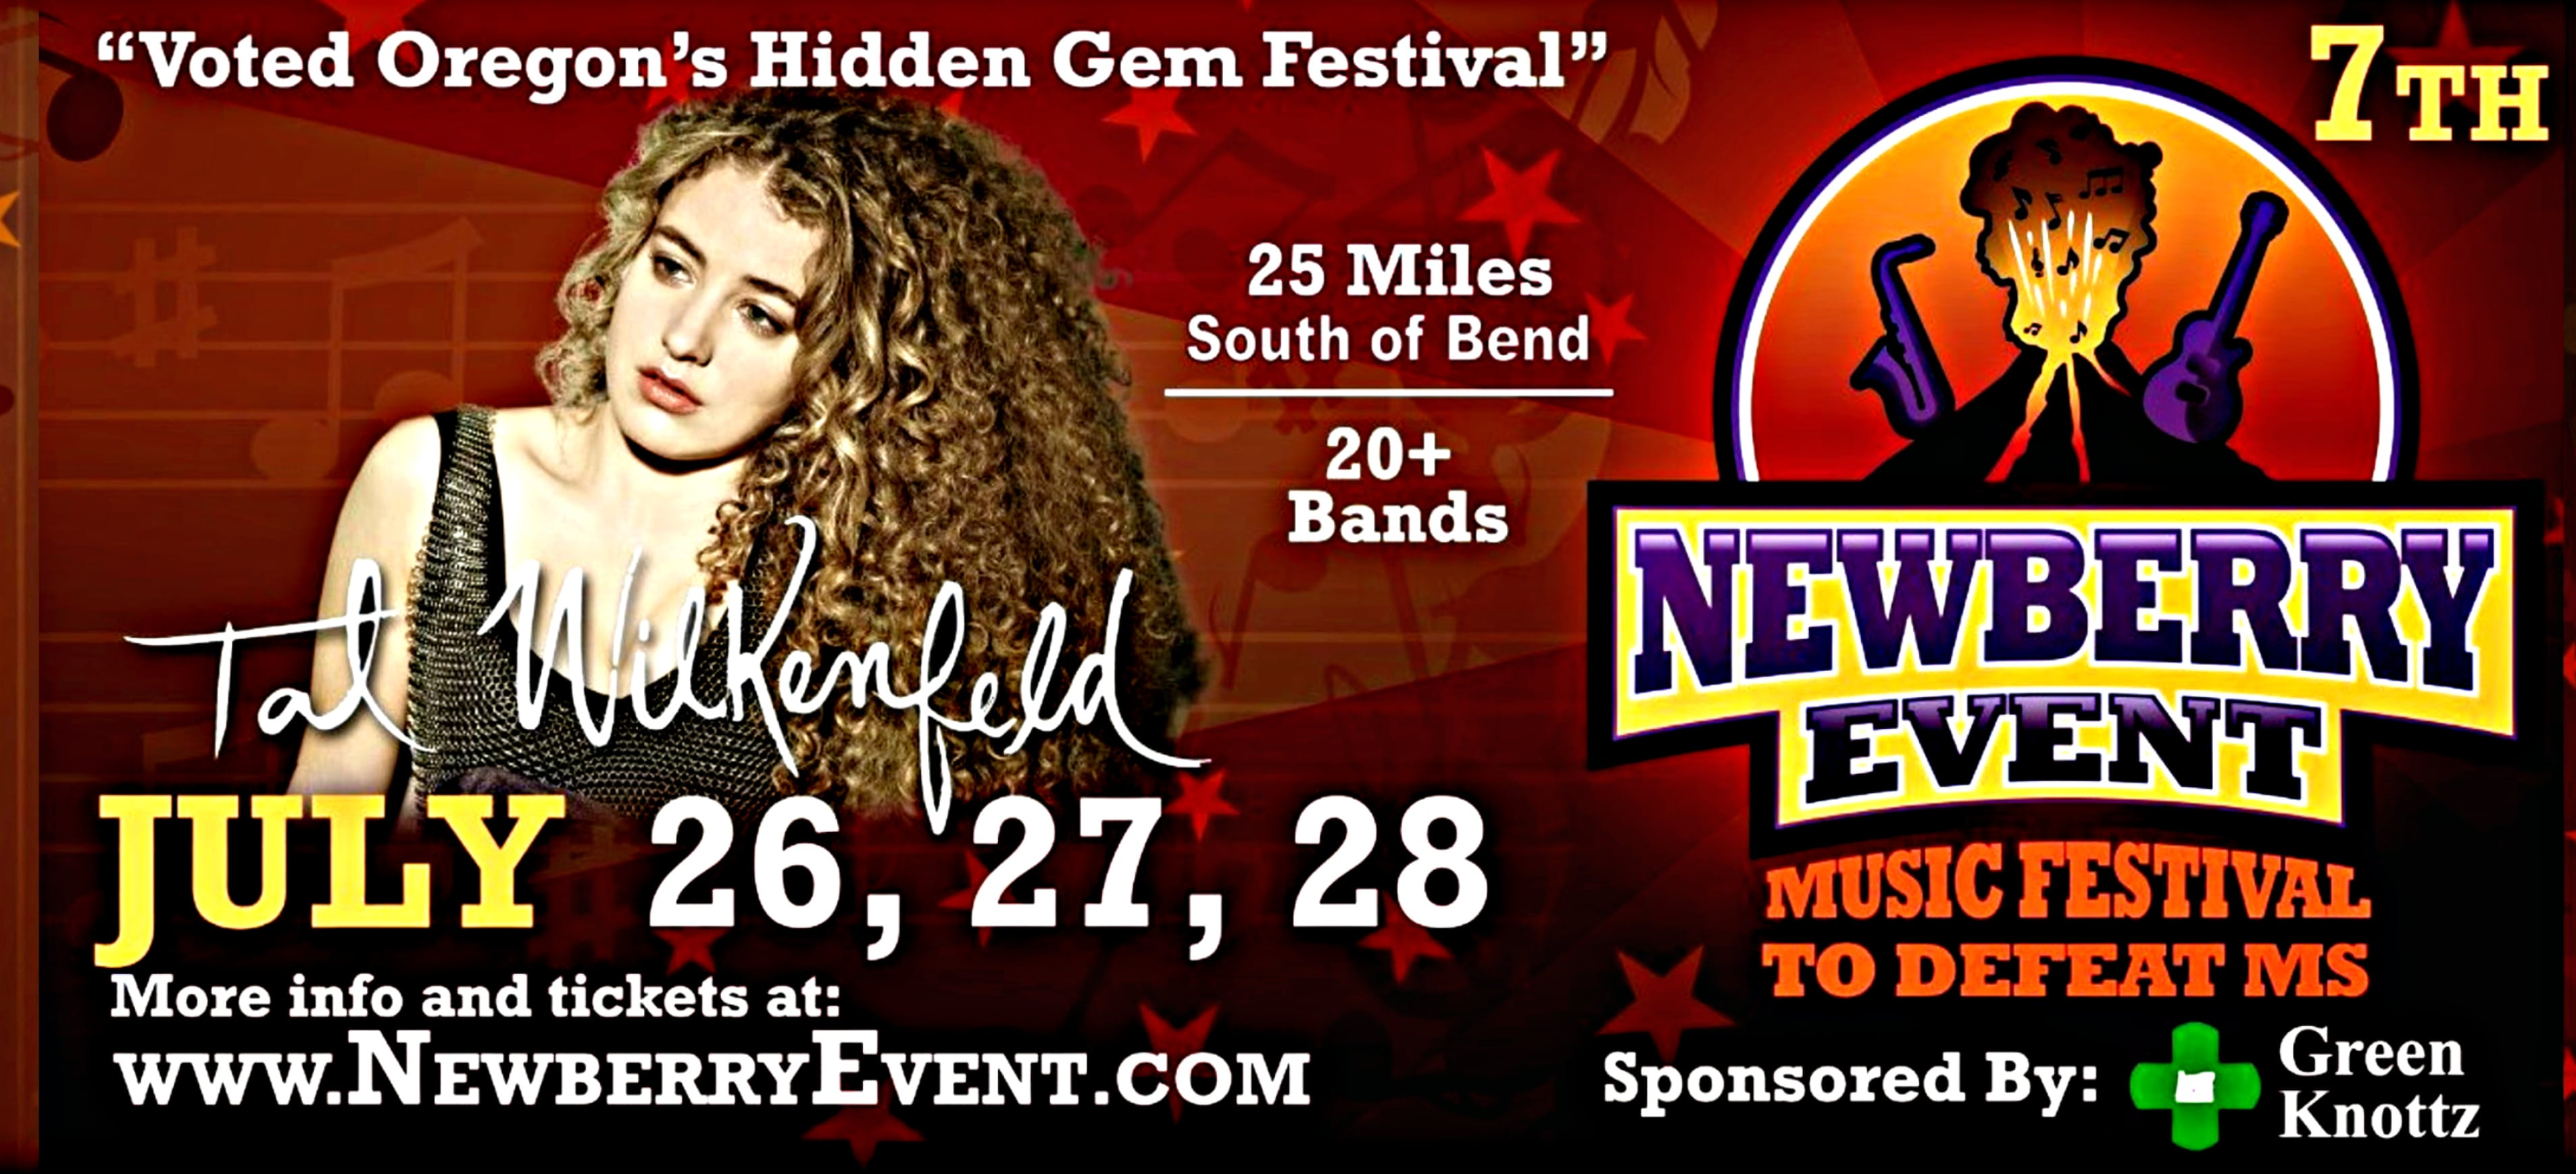 Central Oregon's 7th Annual Newberry Event Music and Arts Festival to Defeat MS